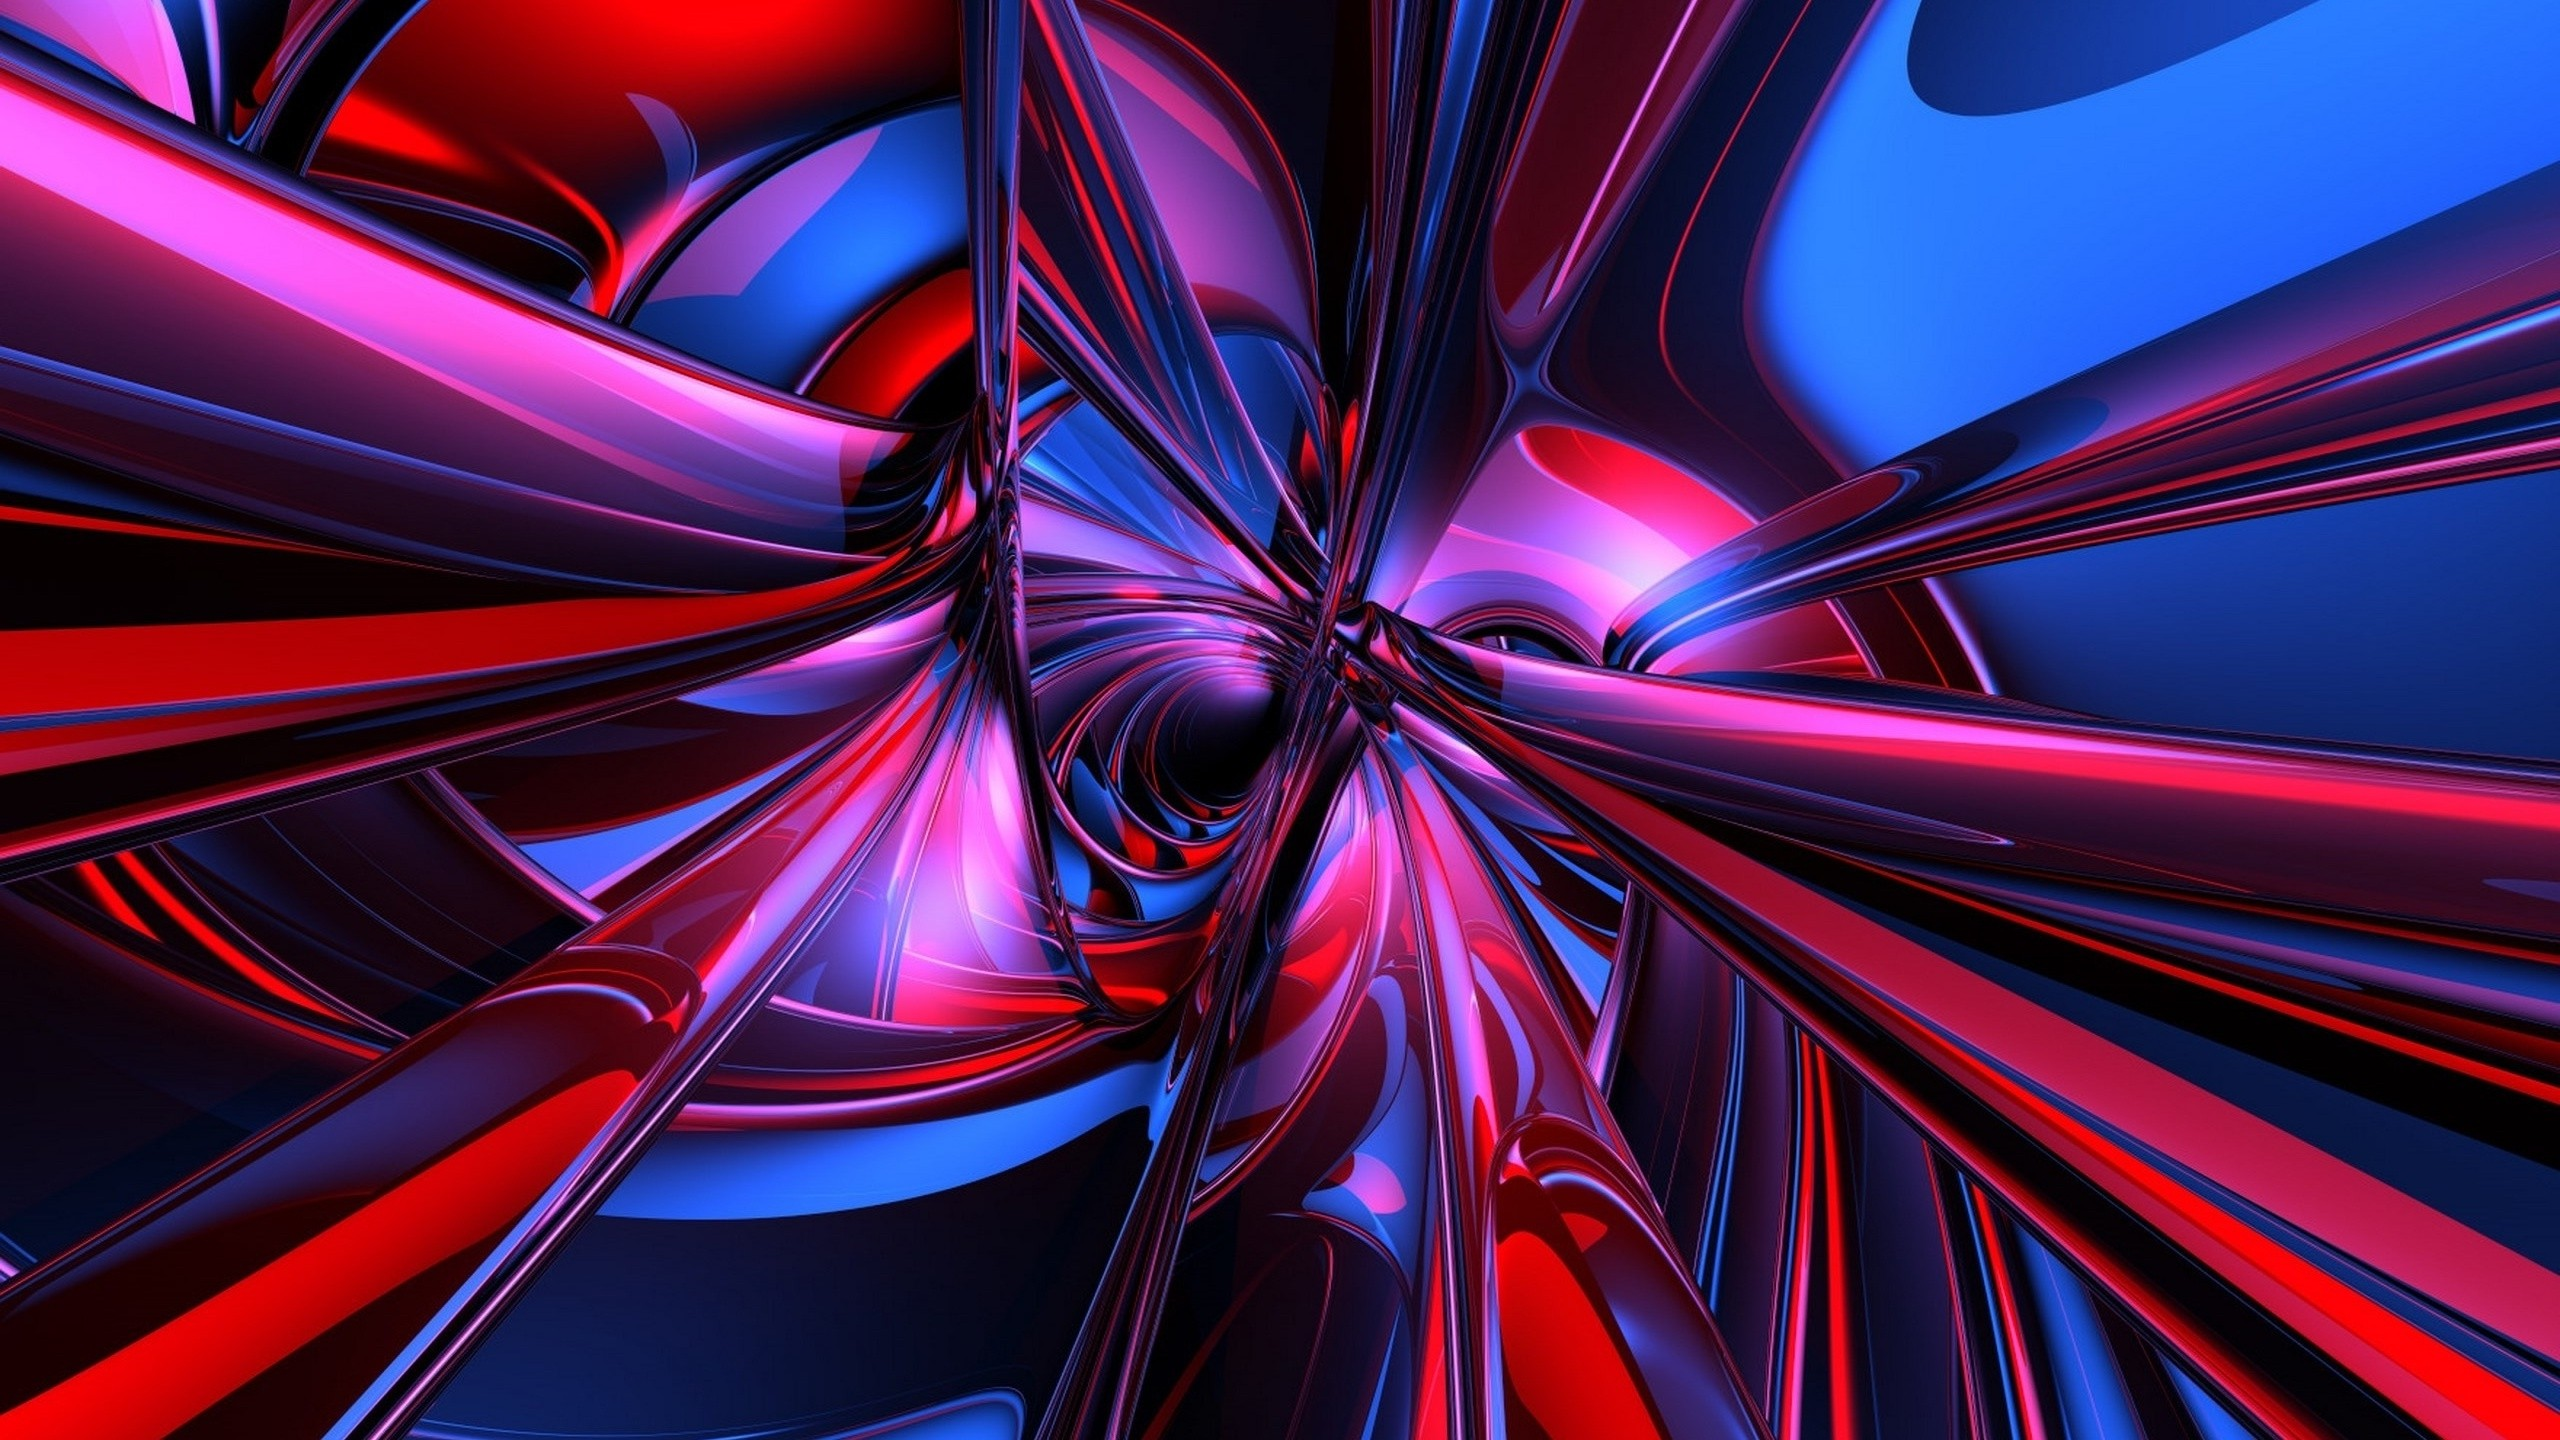 2560x1440 Red White And Blue Wallpapers Photo Free Download Background Px 157 MB 3d